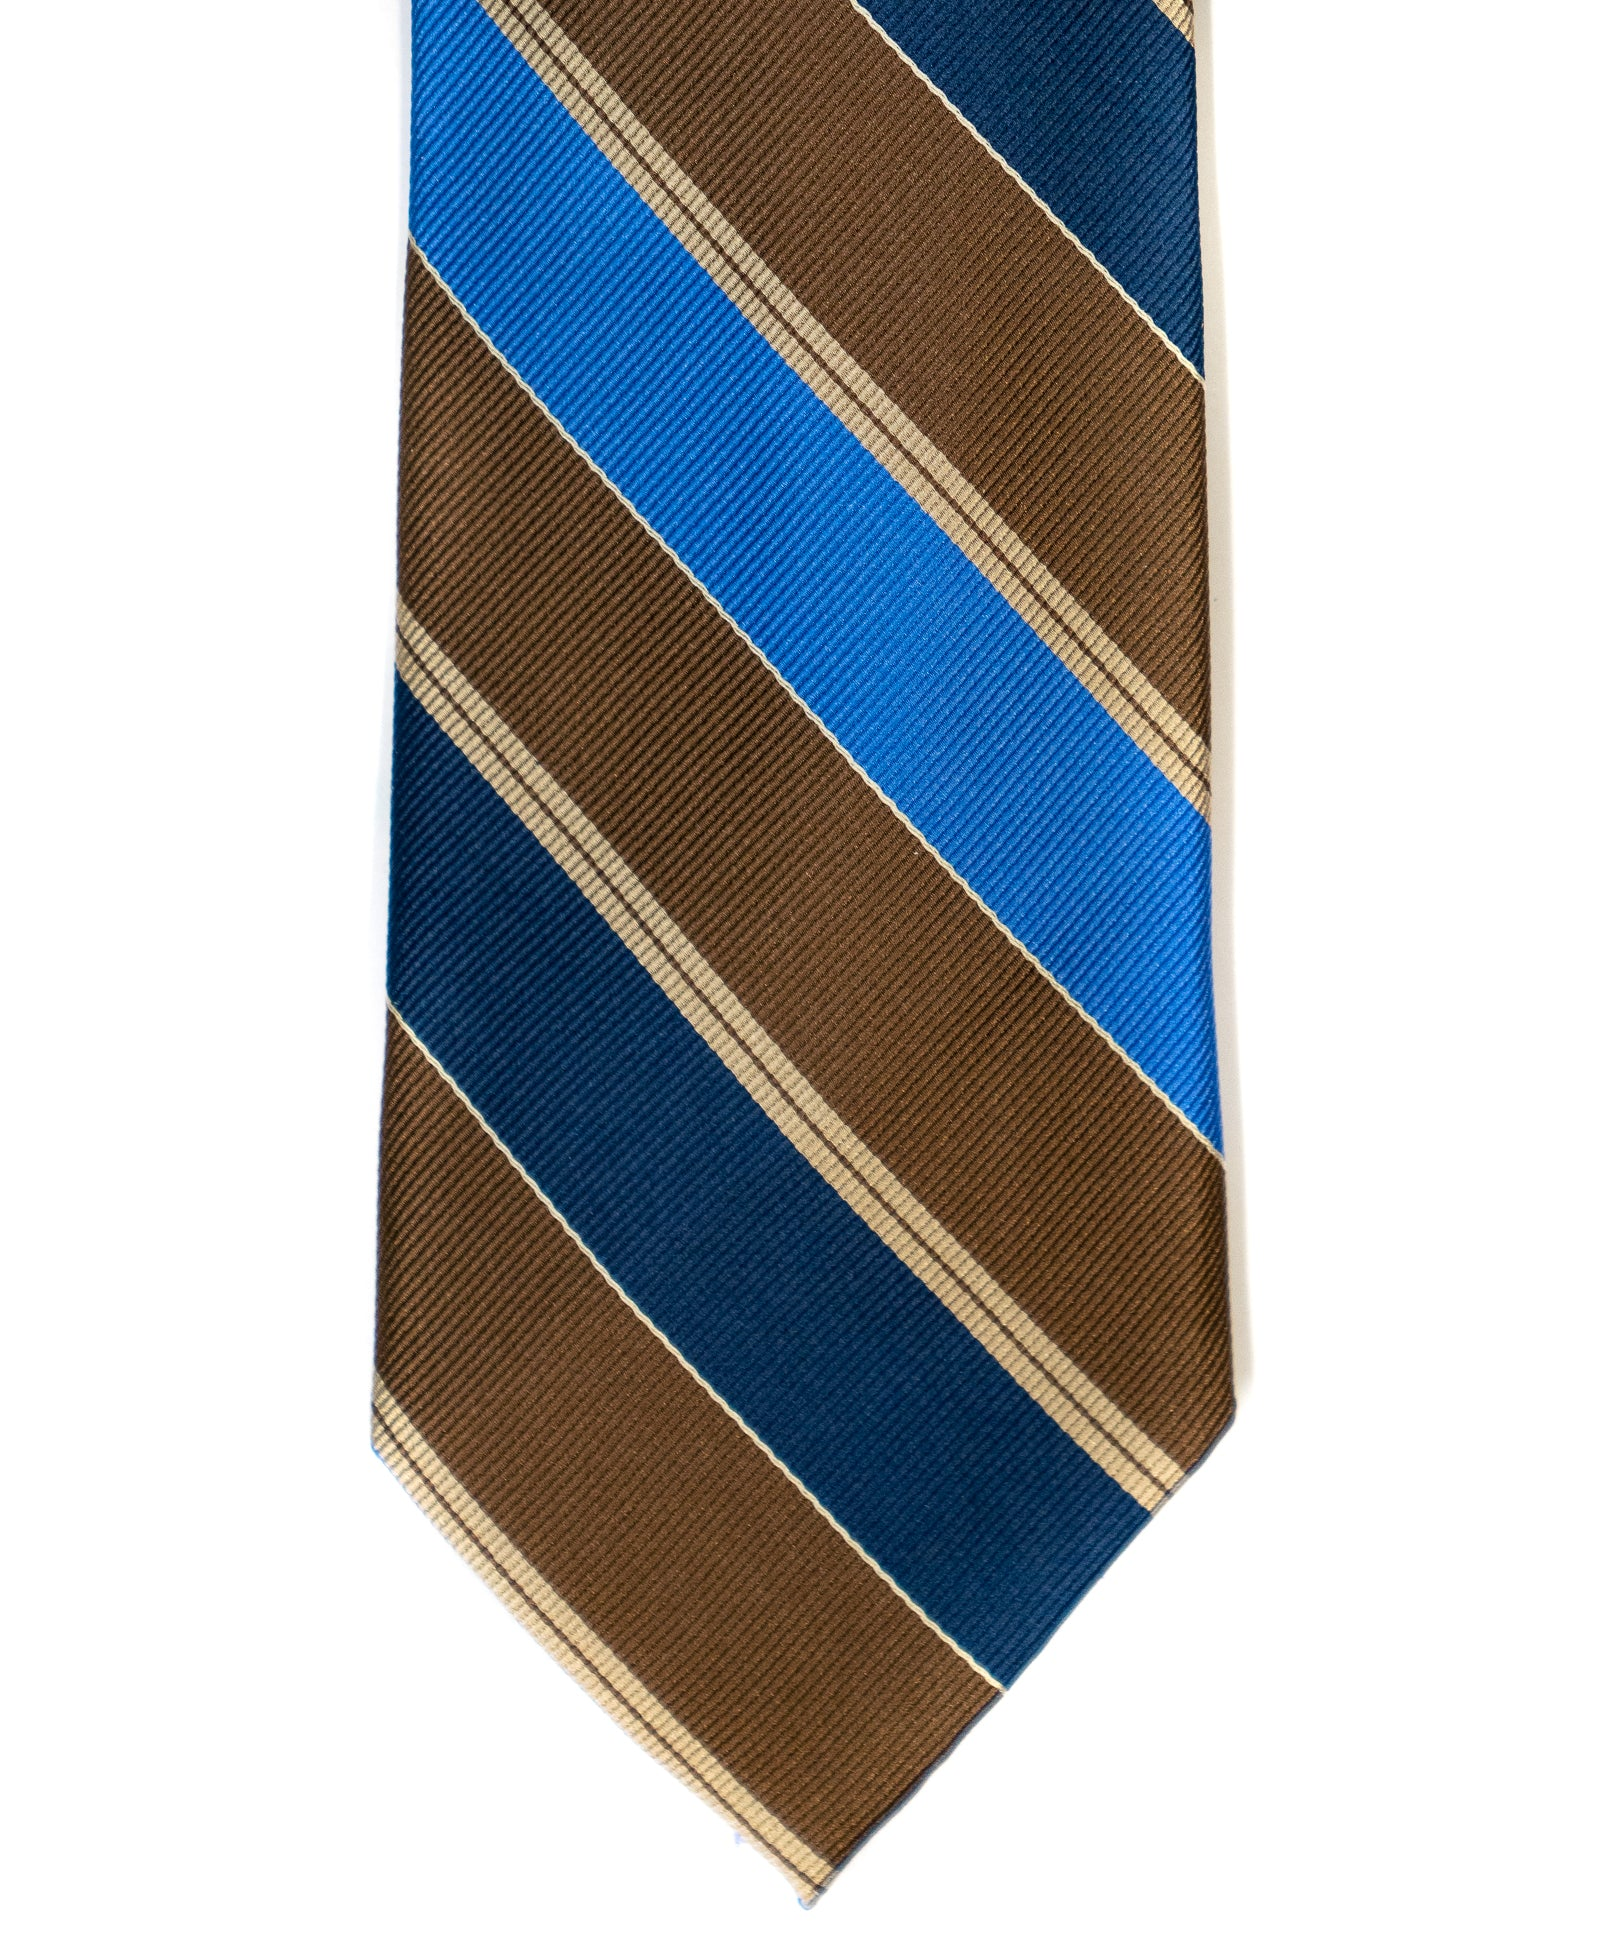 Silk Tie In Brown With Navy & Blue Stripes - Rainwater's